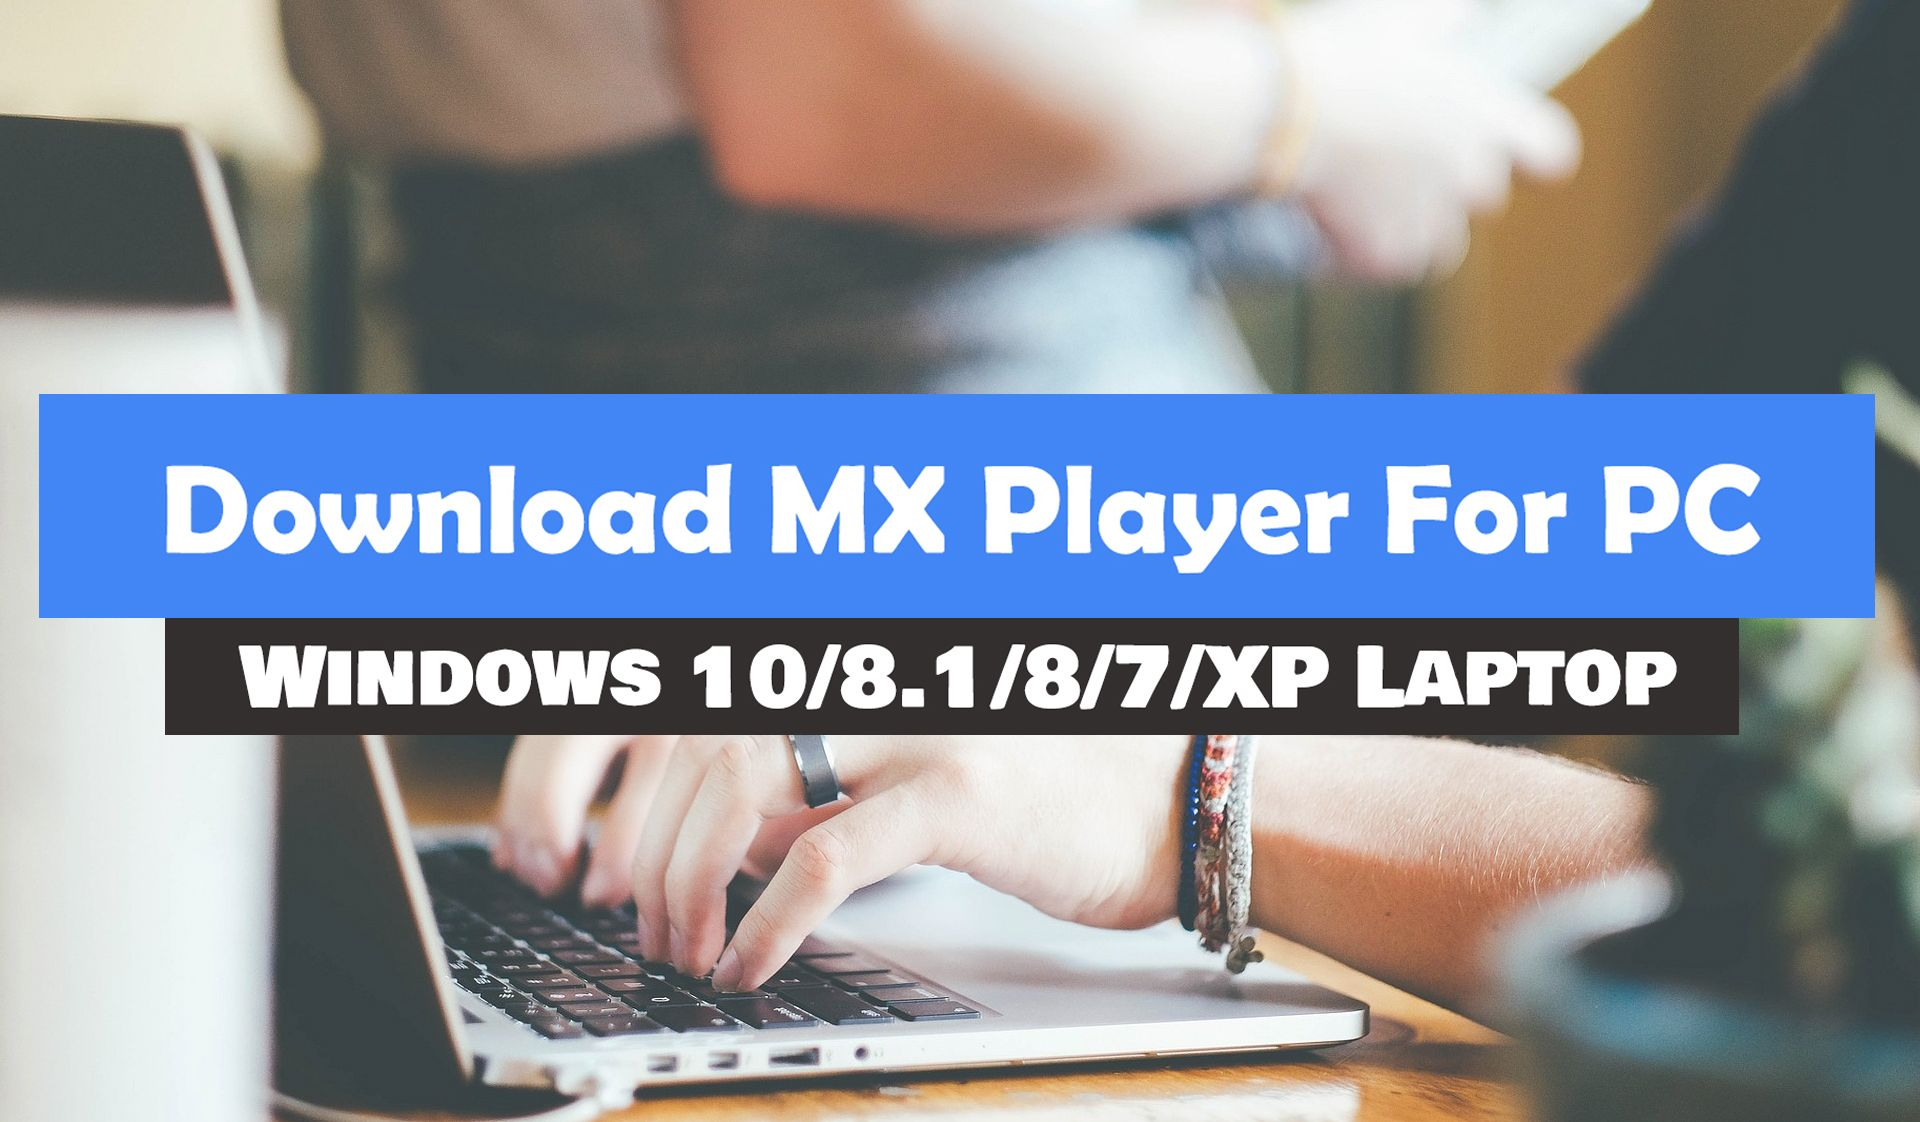 Download MX Player For PC [ Windows 10/8.1/8/7/XP